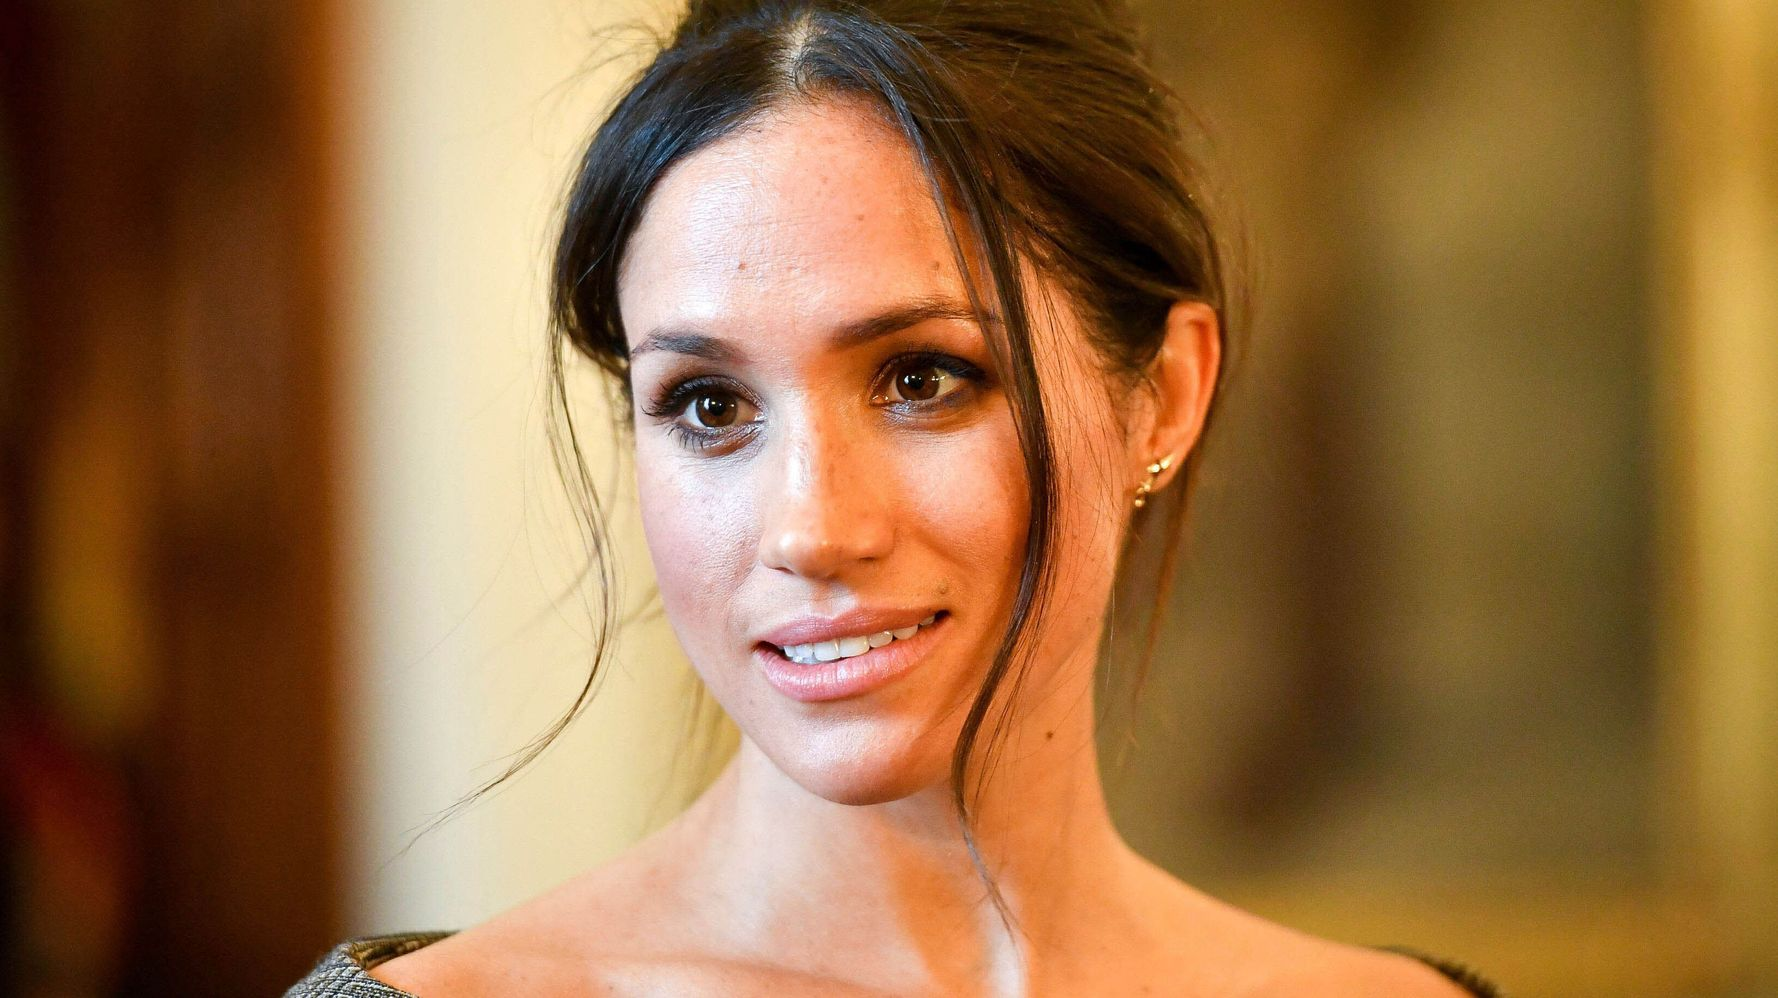 Meghan Markle's New Diamond Ring Is A Stunner